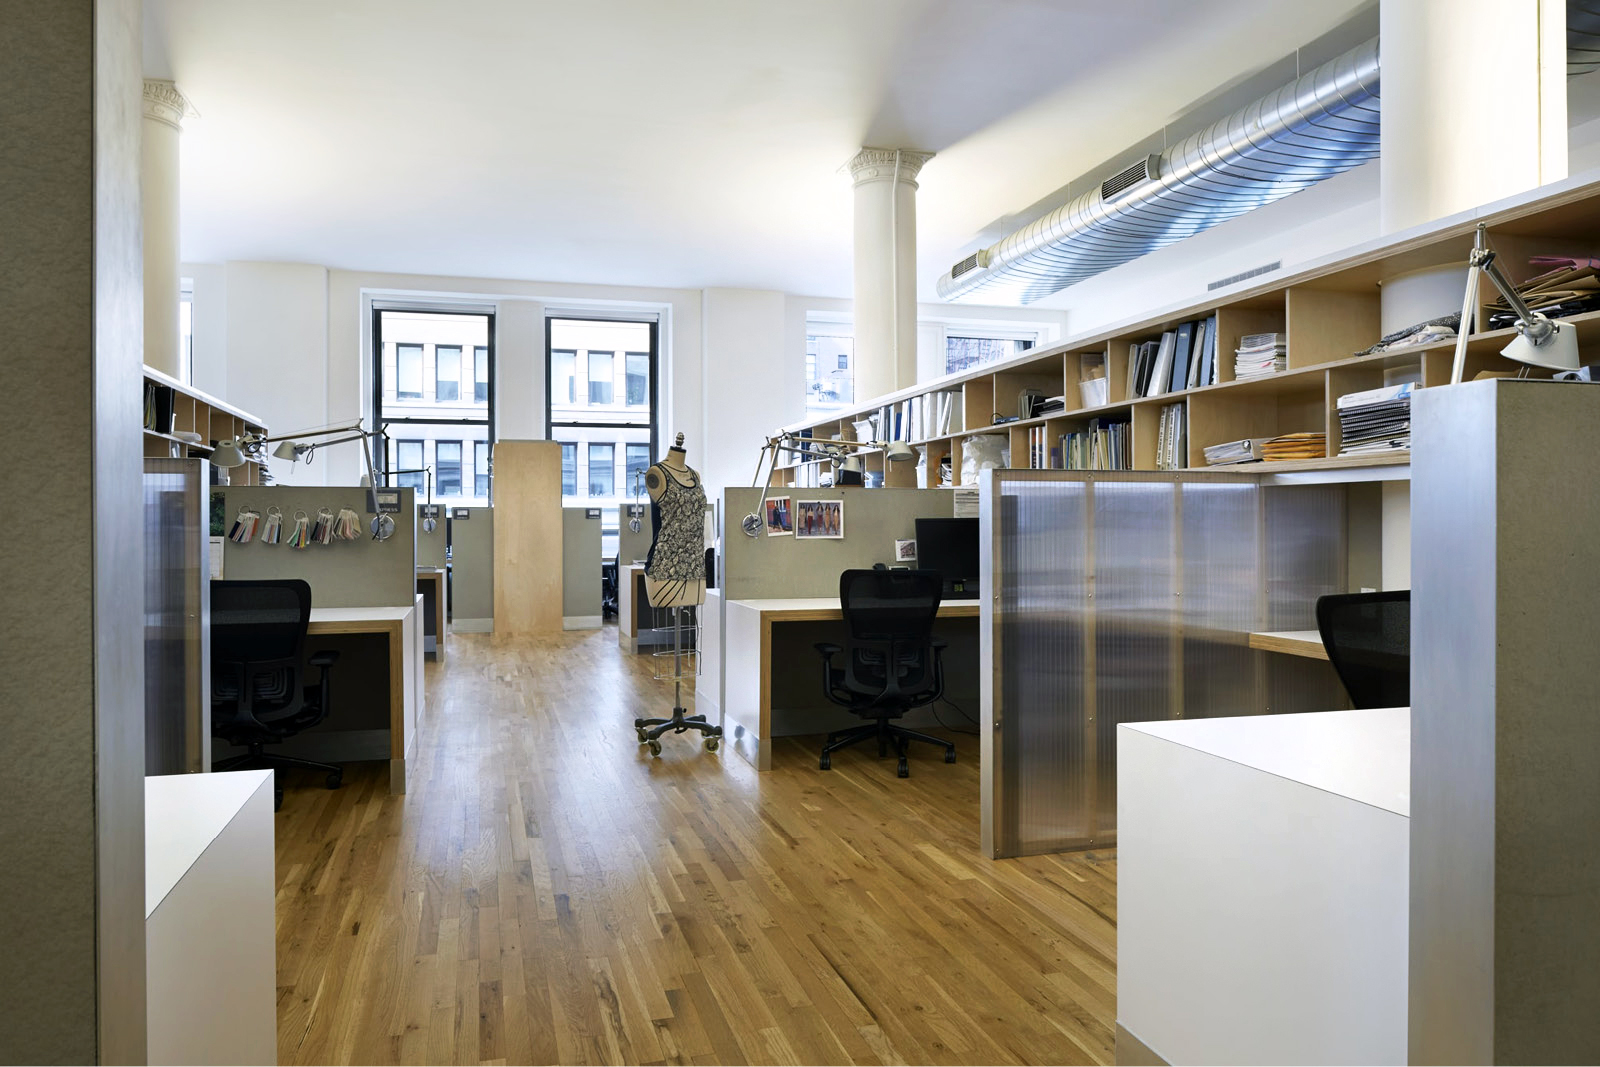 res4-resolution-4-architecture-modern-commercial-express-office-design-studio-interior-17.jpg